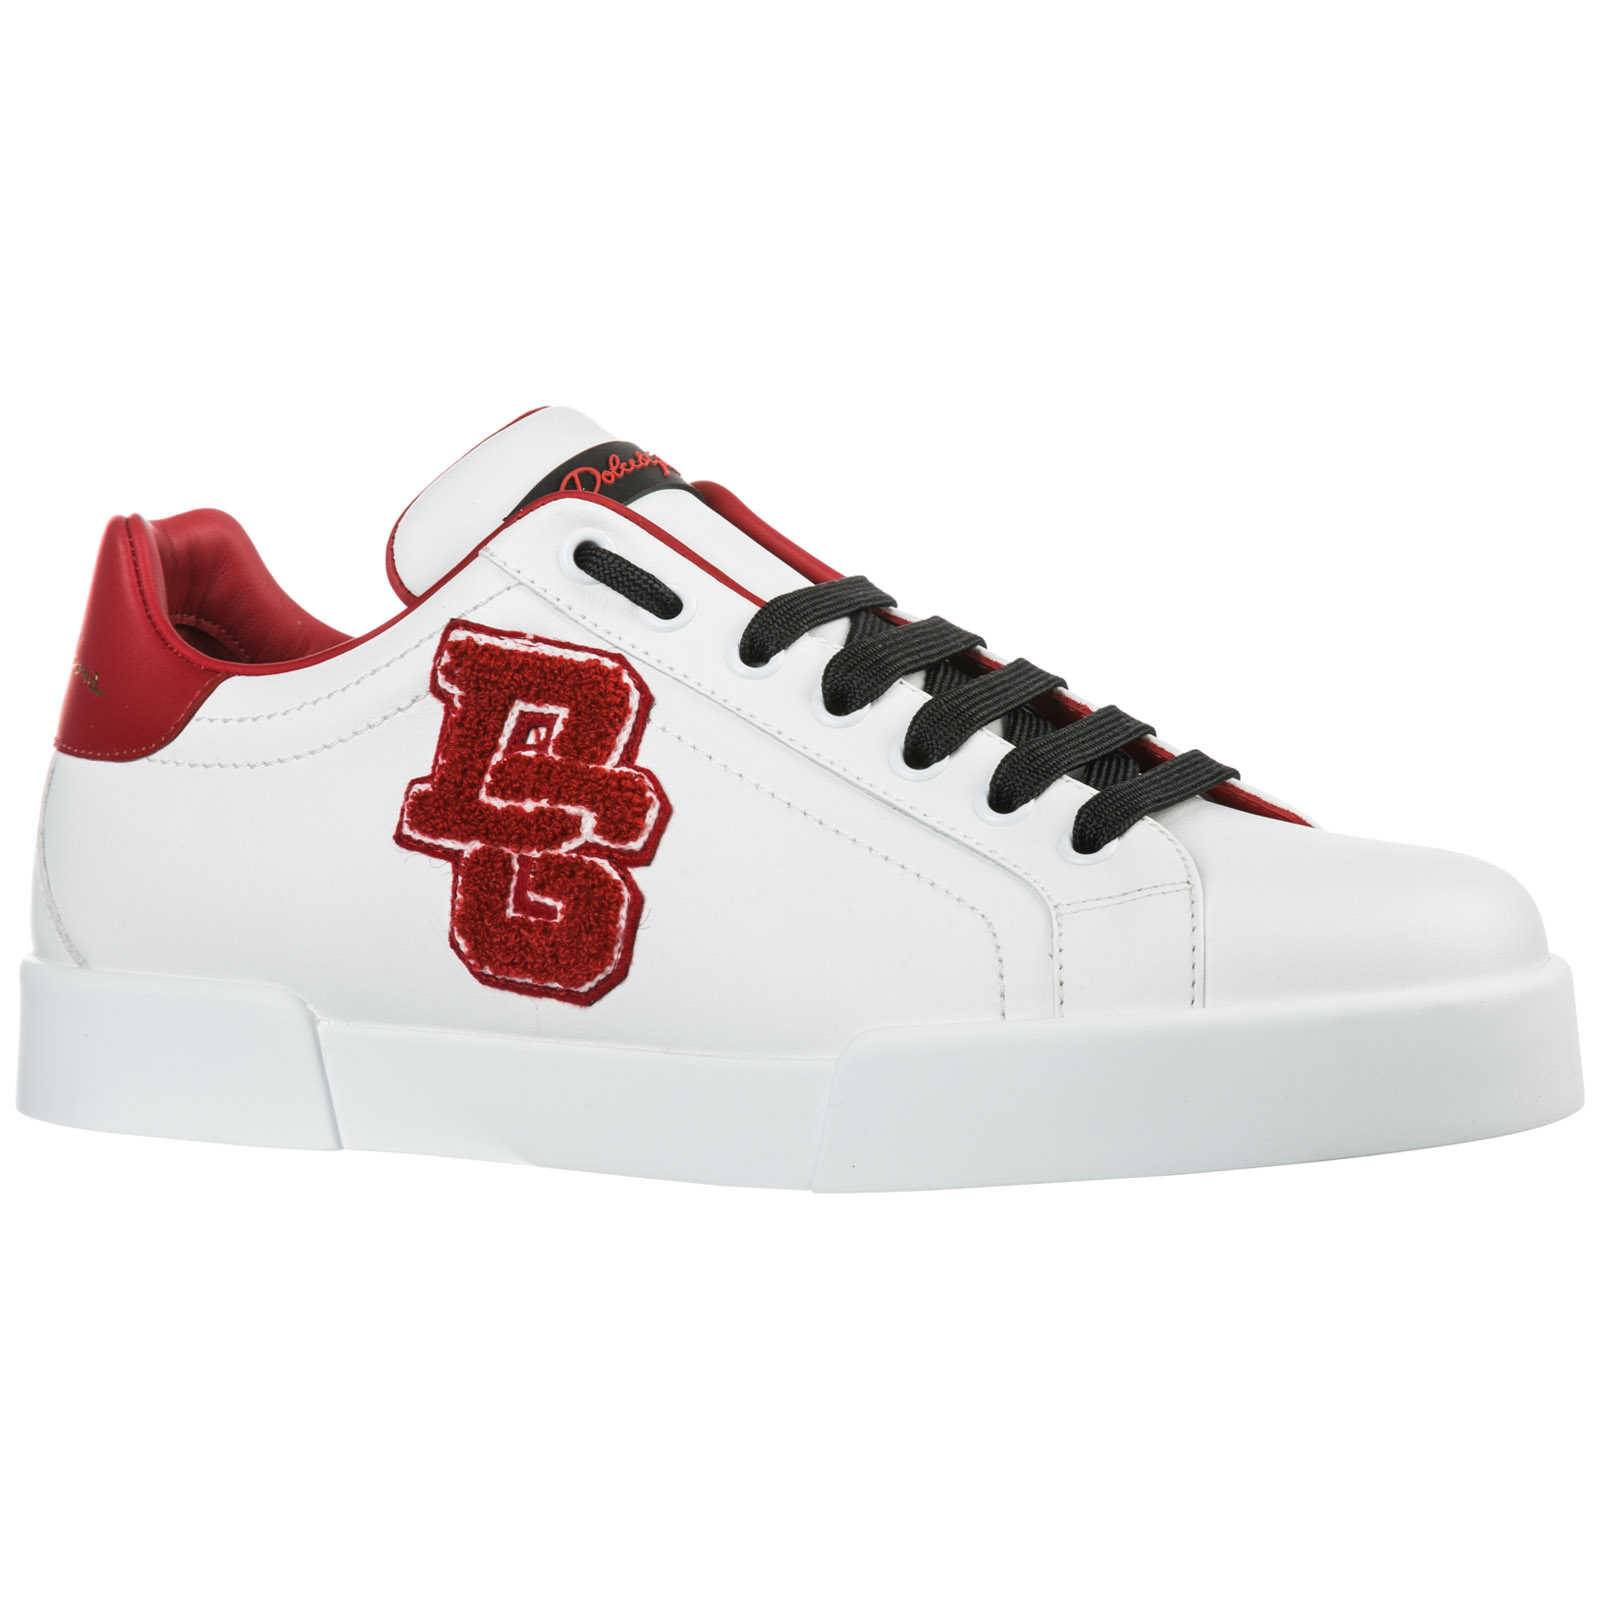 Men's shoes leather trainers sneakers portofino